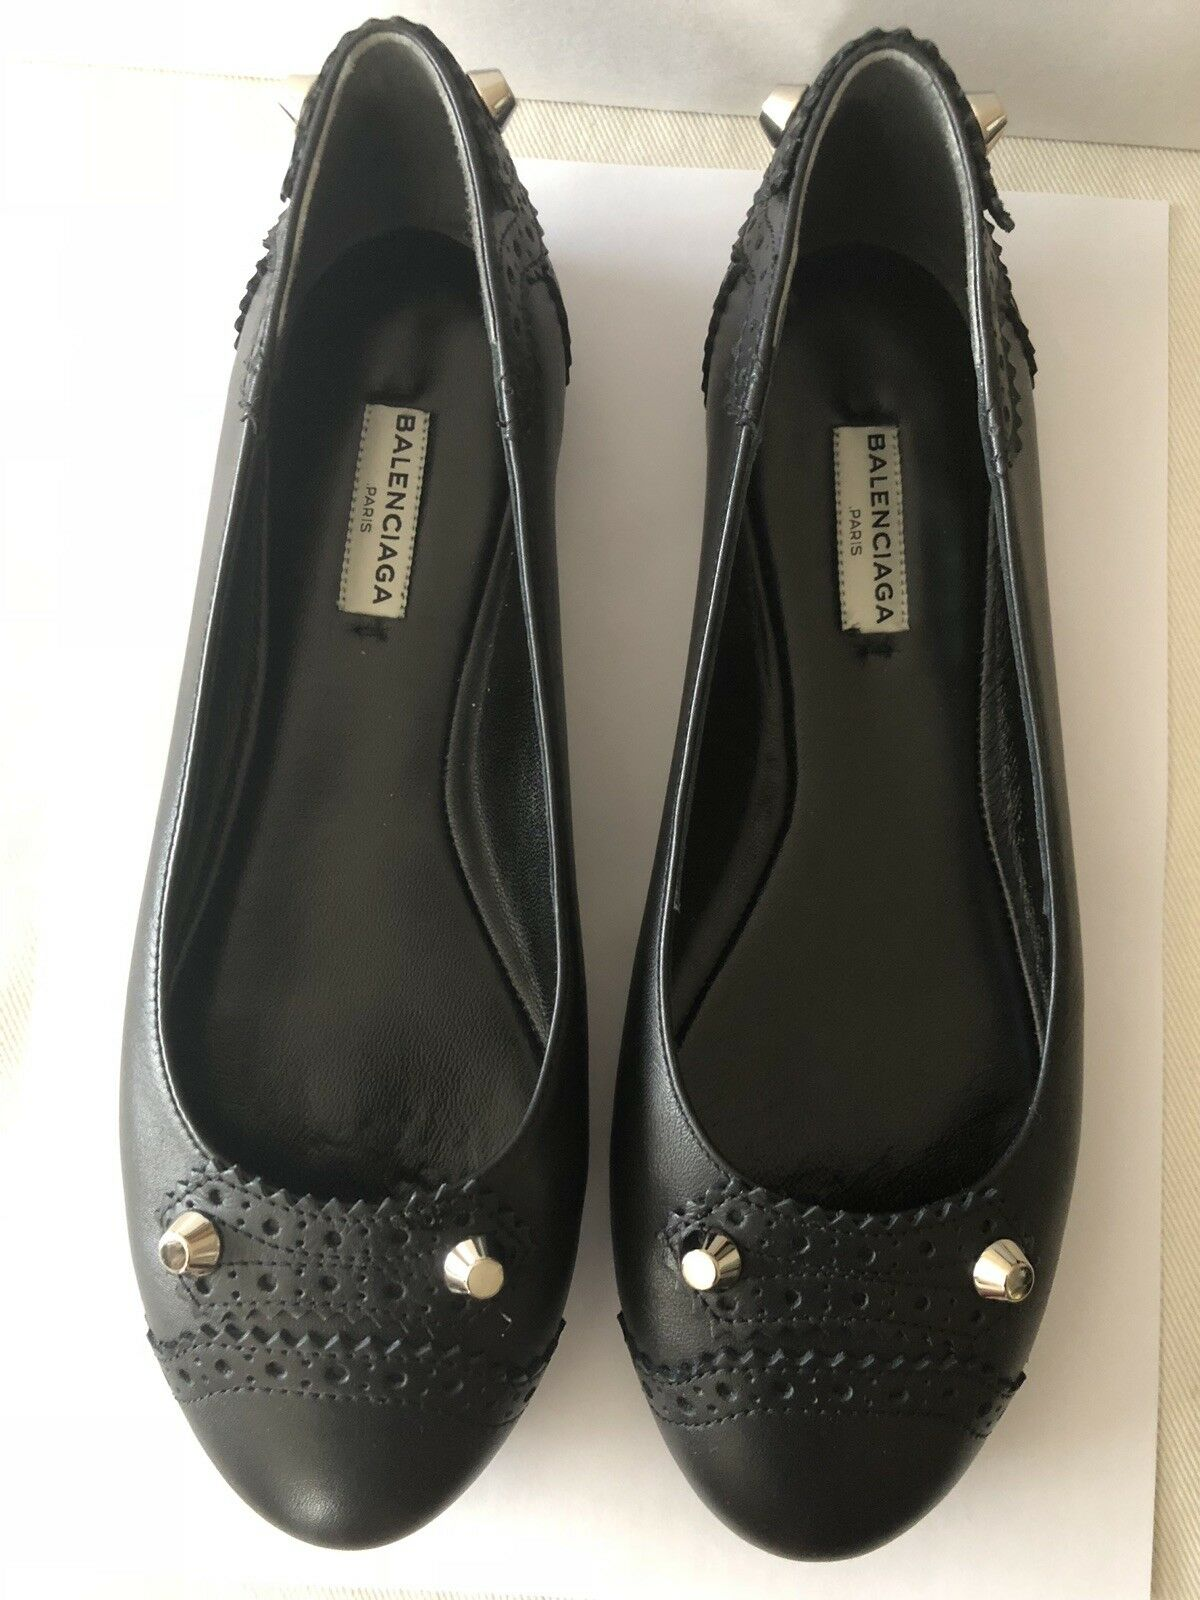 BALENCIAGA Black Leather w Silver Studded Ballet Flat shoes Sz 38 US 7.5 NEW